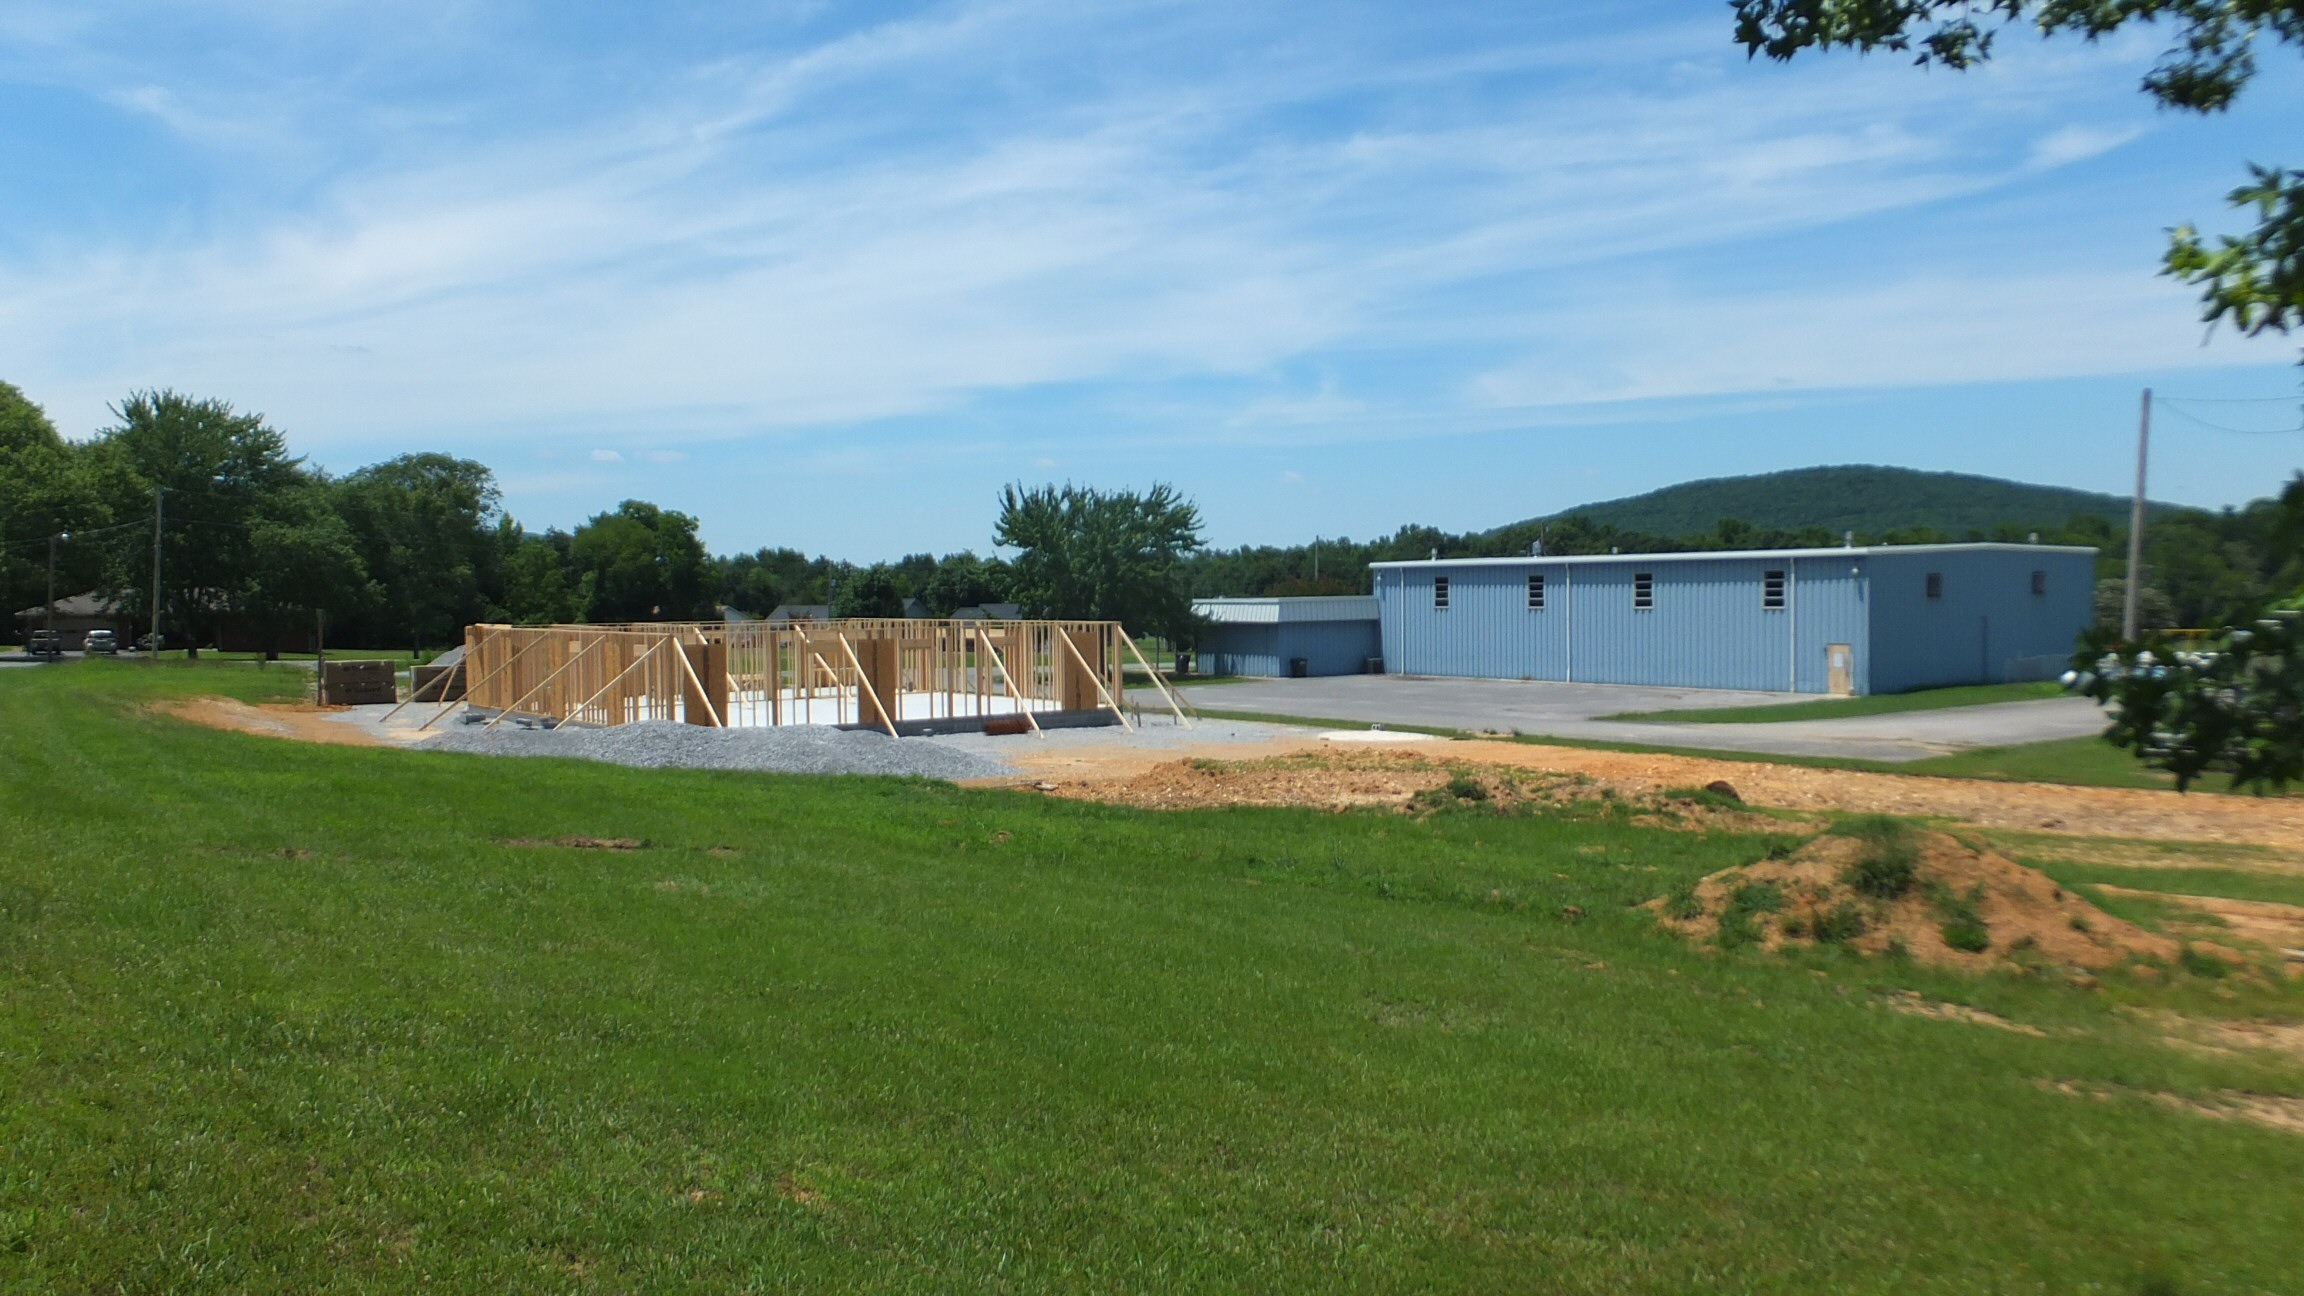 Construction Gurley Senior Center July 2014